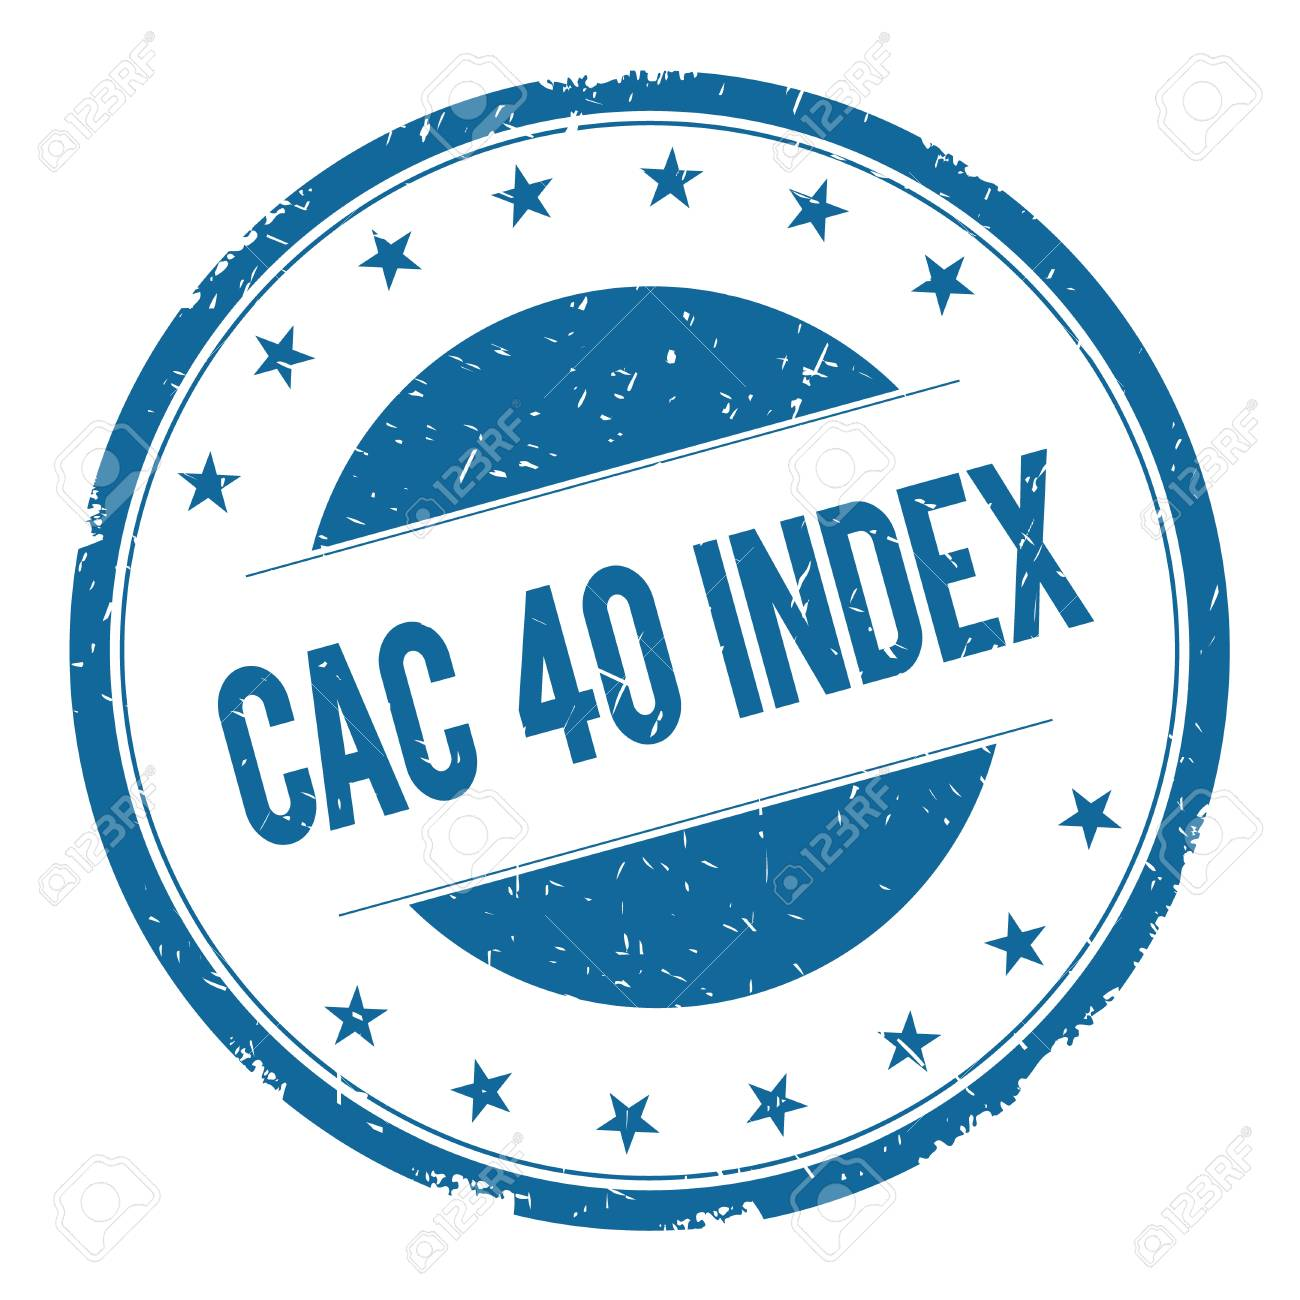 CAC 40 INDEX Stamp Sign Text Word Logo Blue Stock Photo